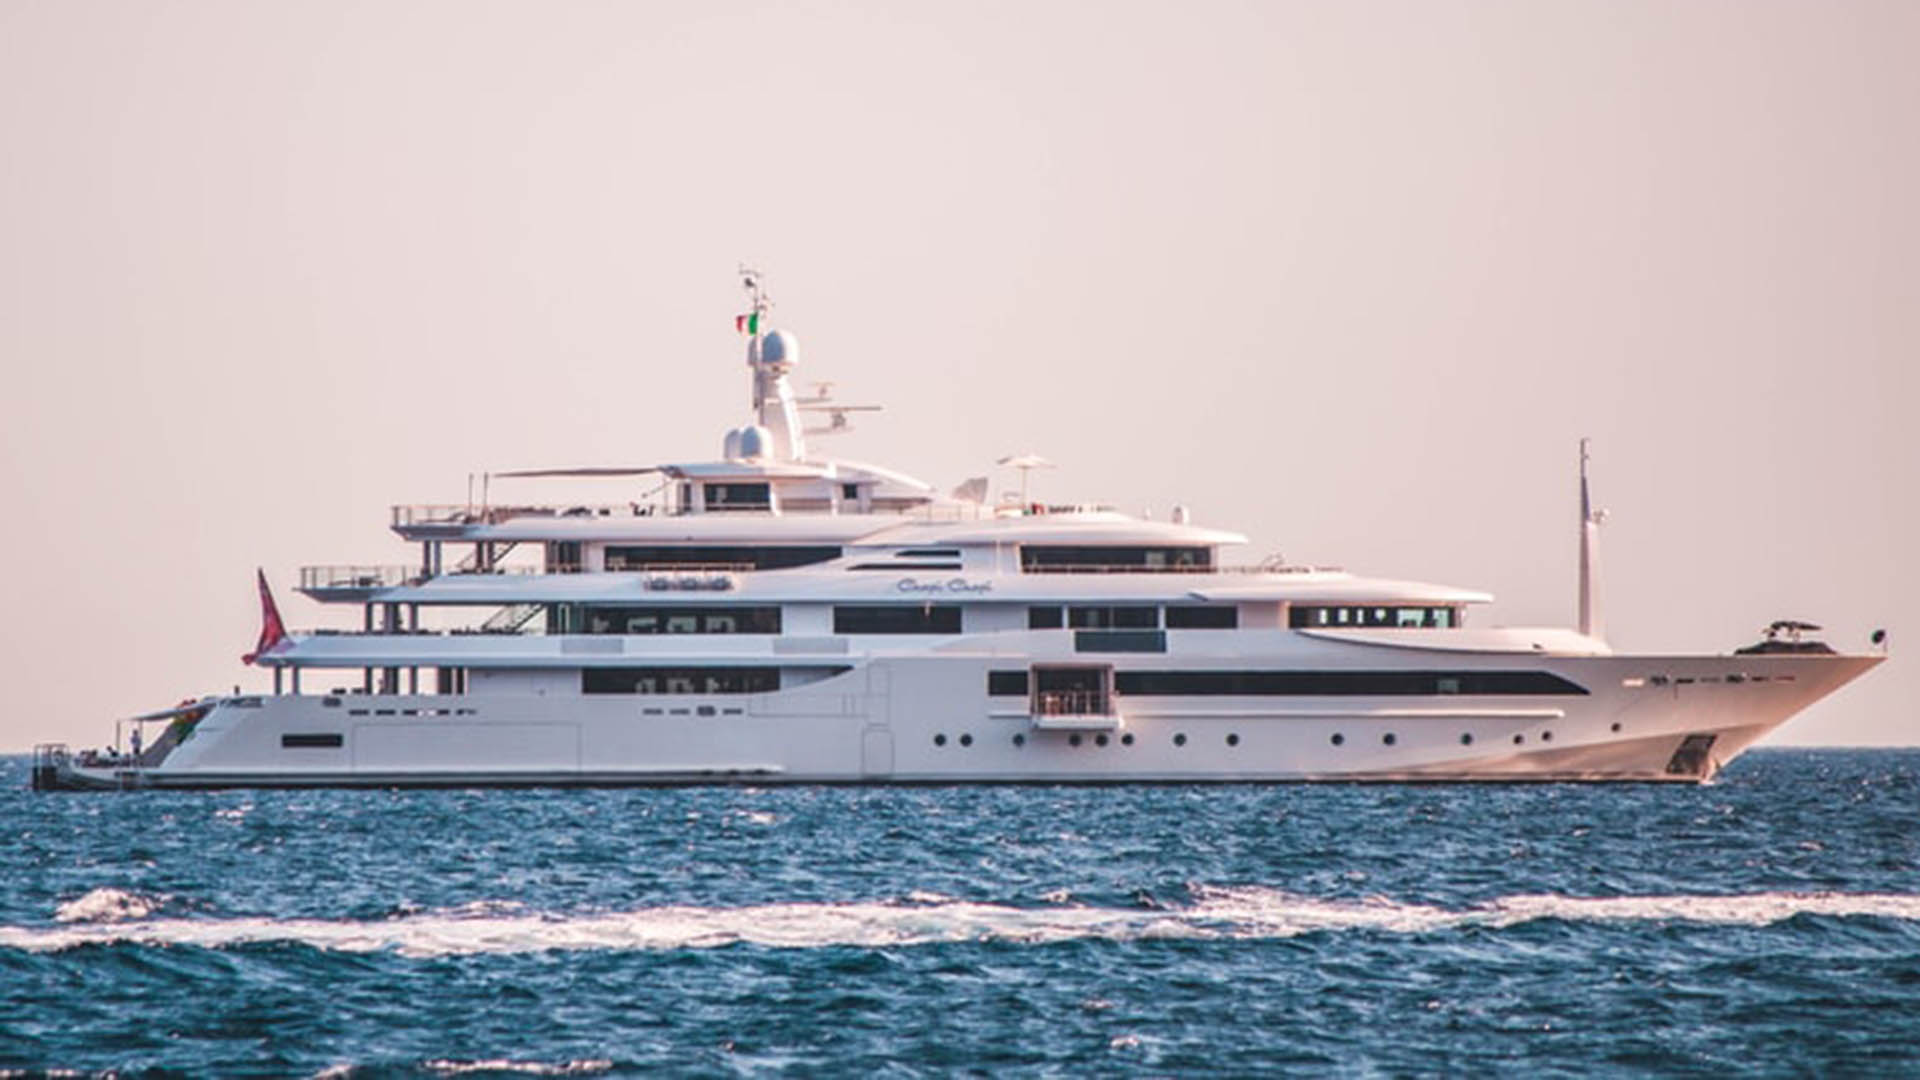 More than a tour: A+ Yachting's Exclusive Programme